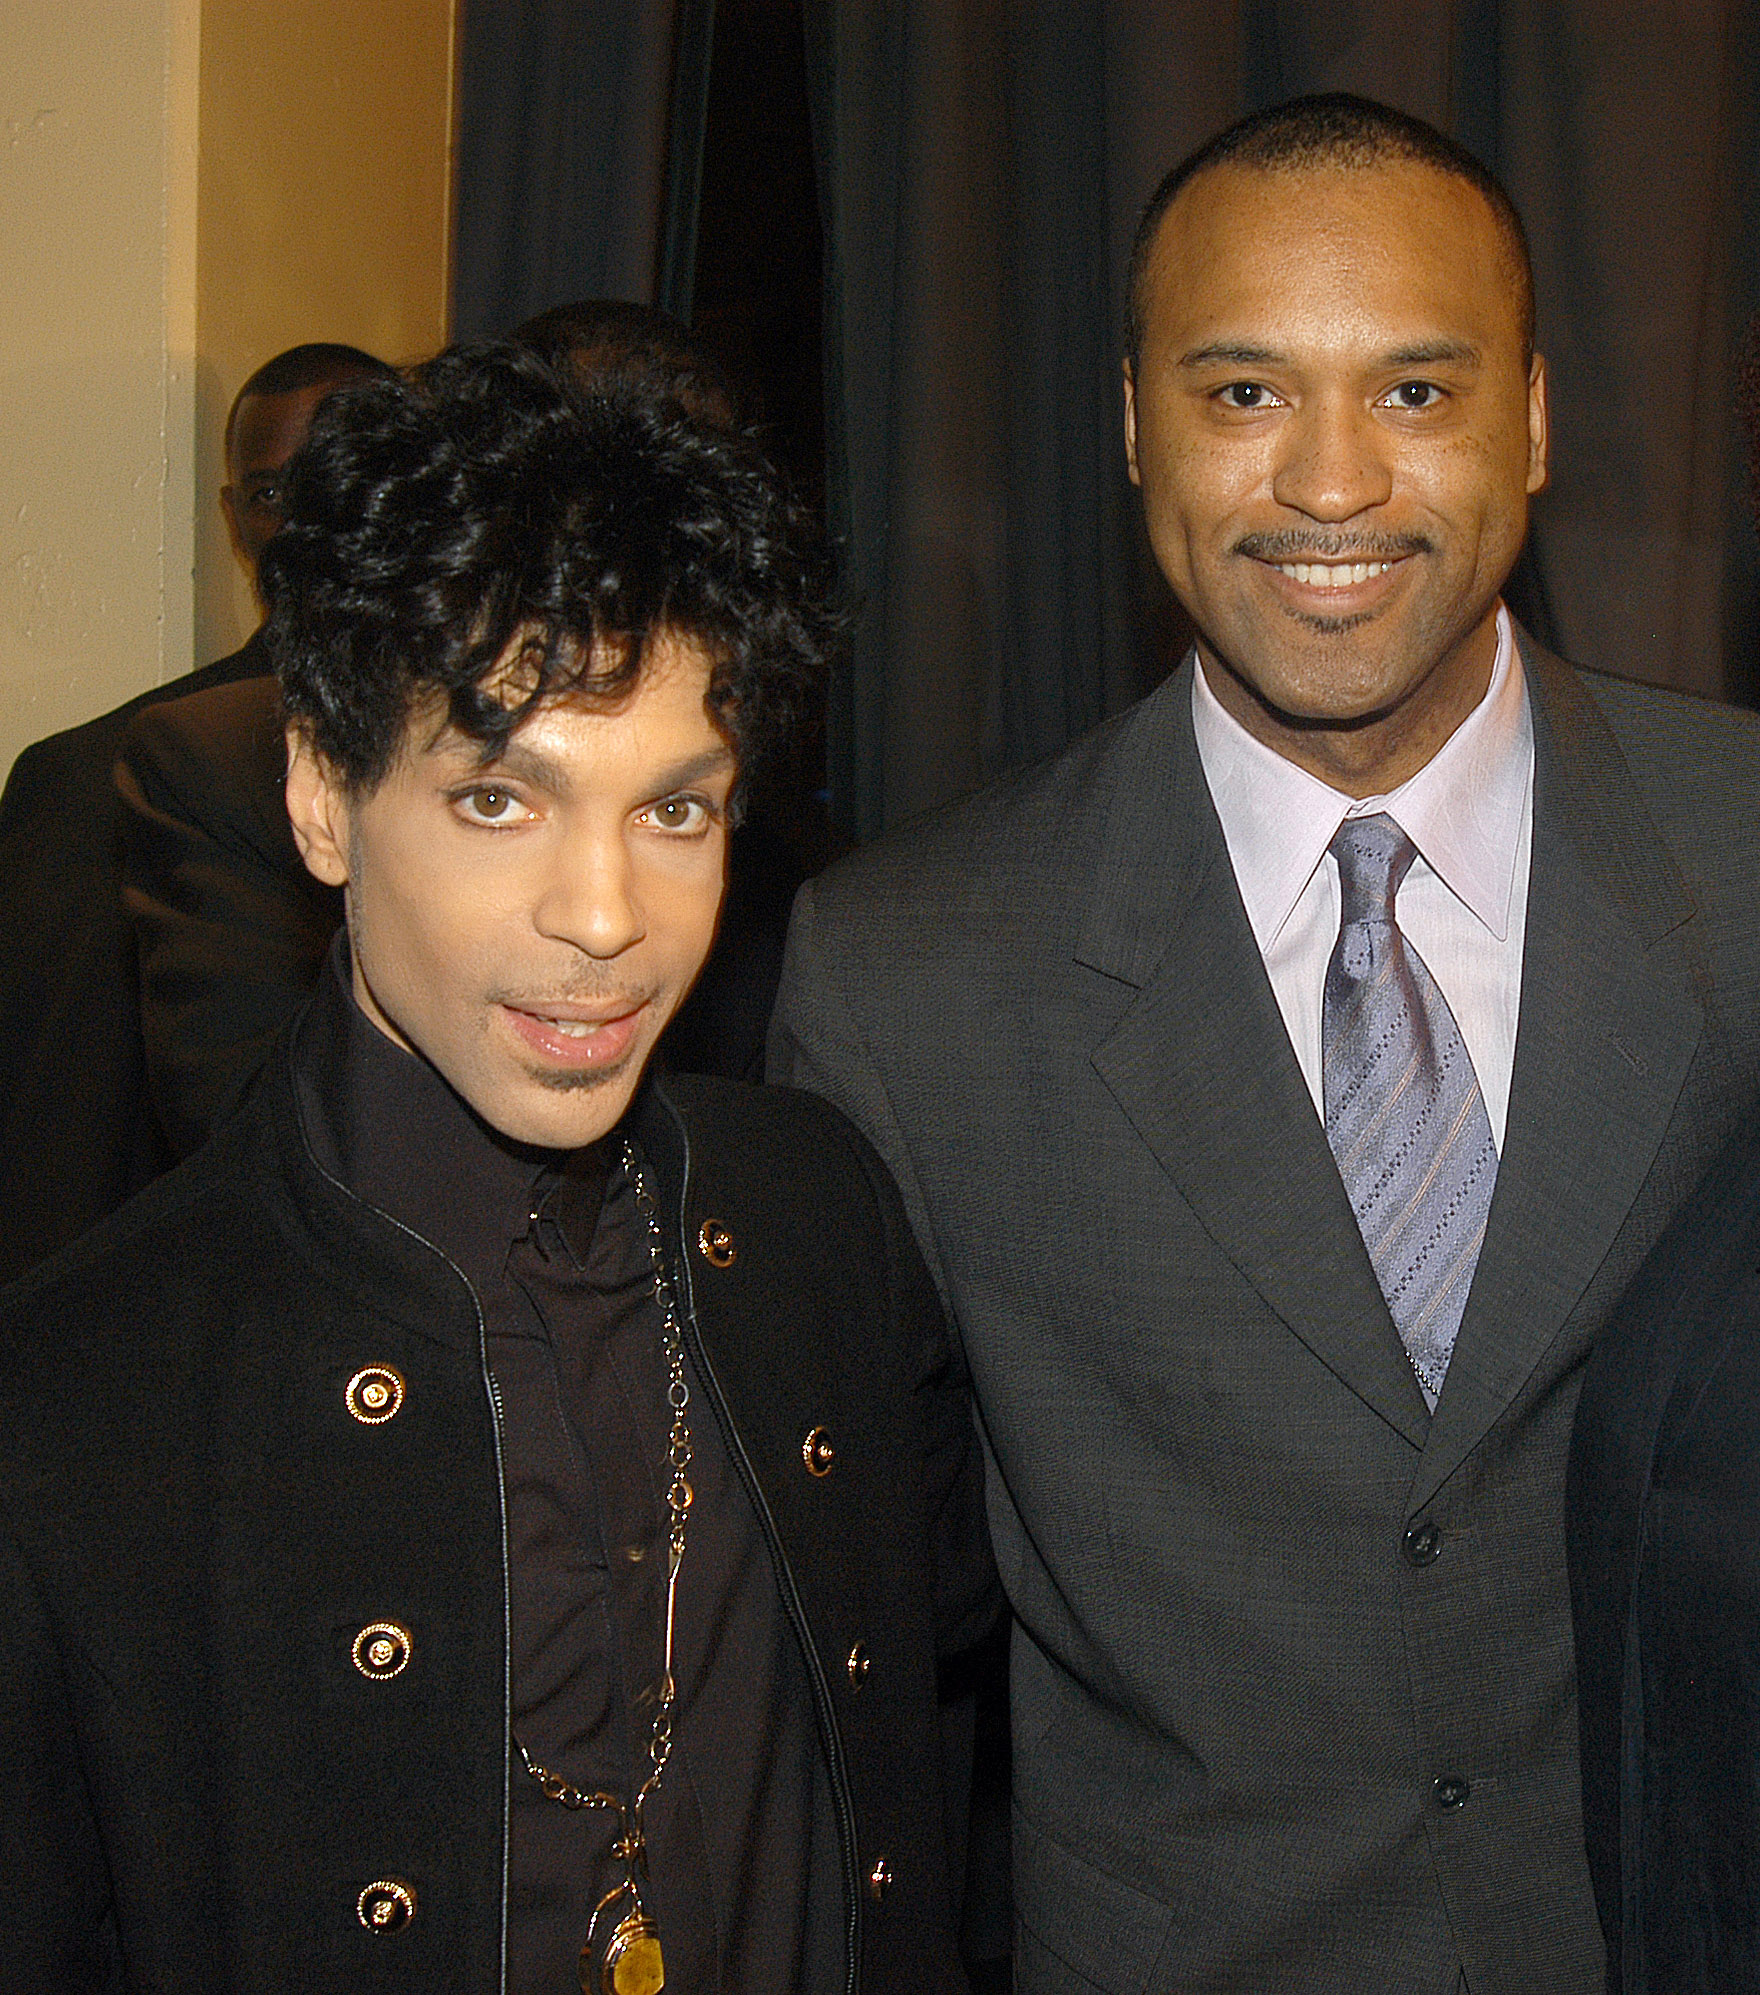 04-Prince and LLM1